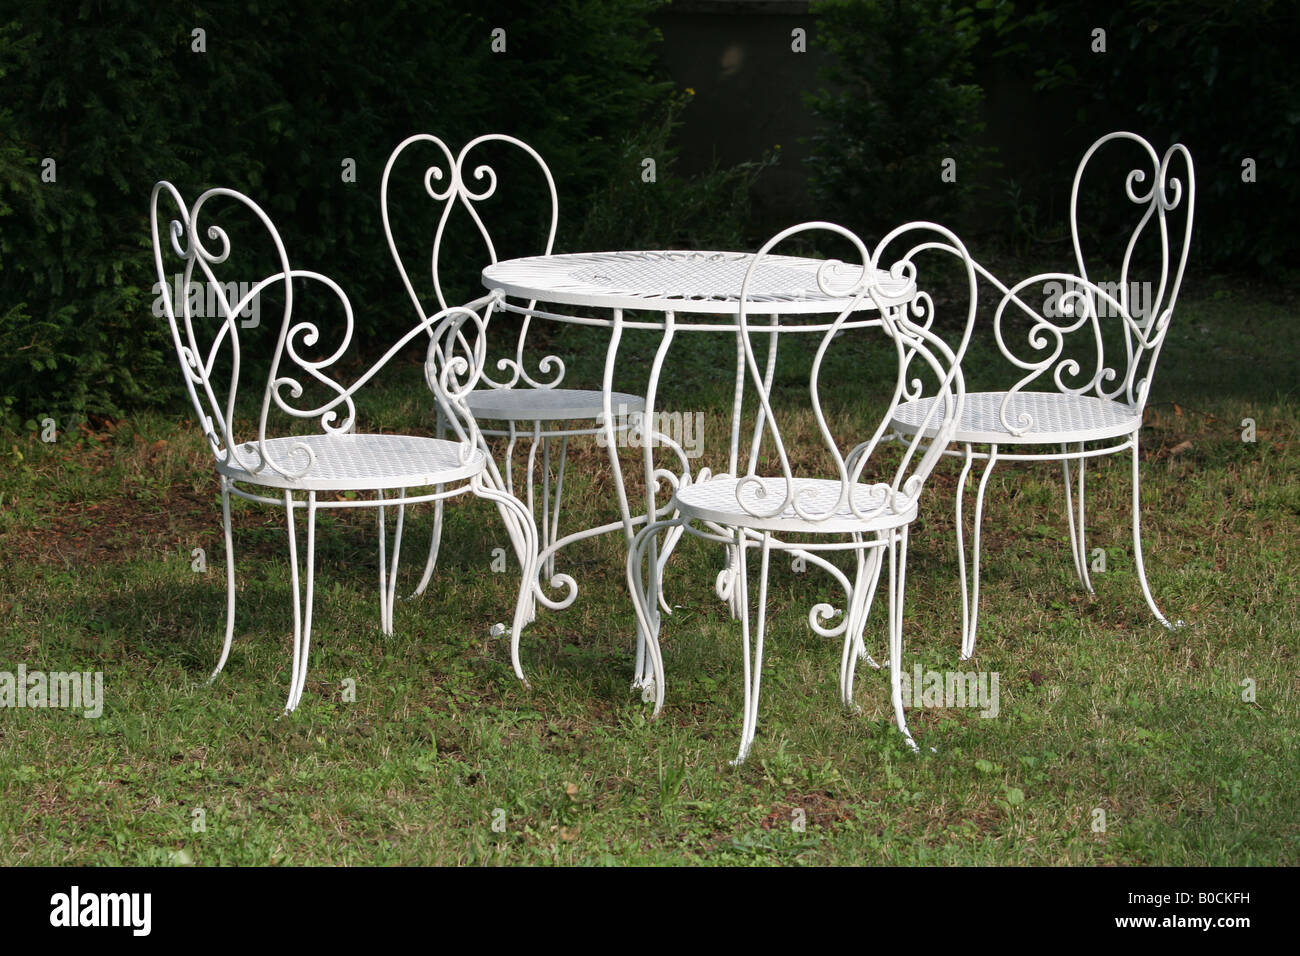 white wrought iron kitchen chairs steel airport chair dining table and in garden stock